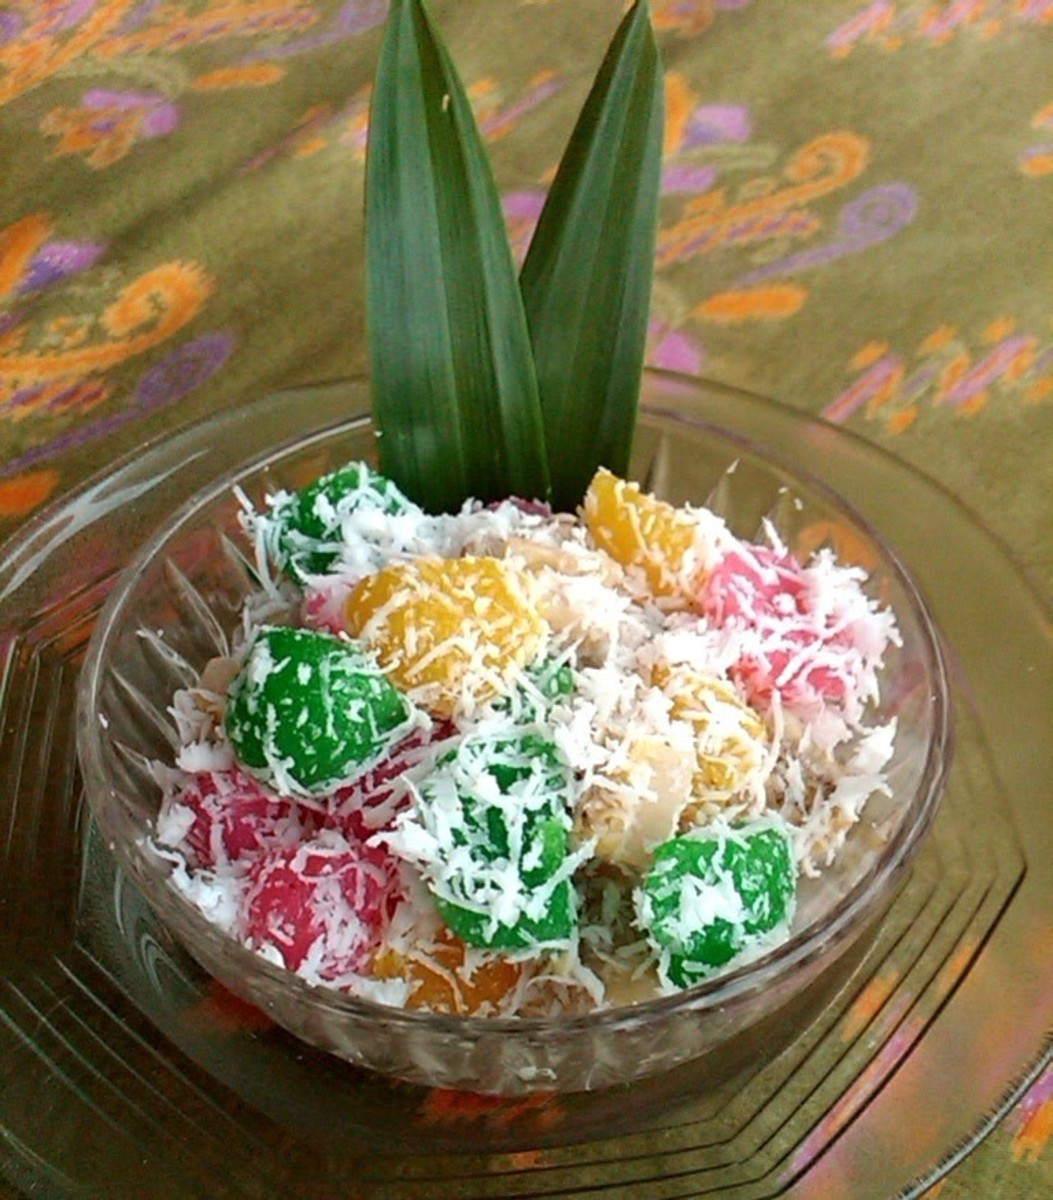 How to Make Cassava Rainbow Balls